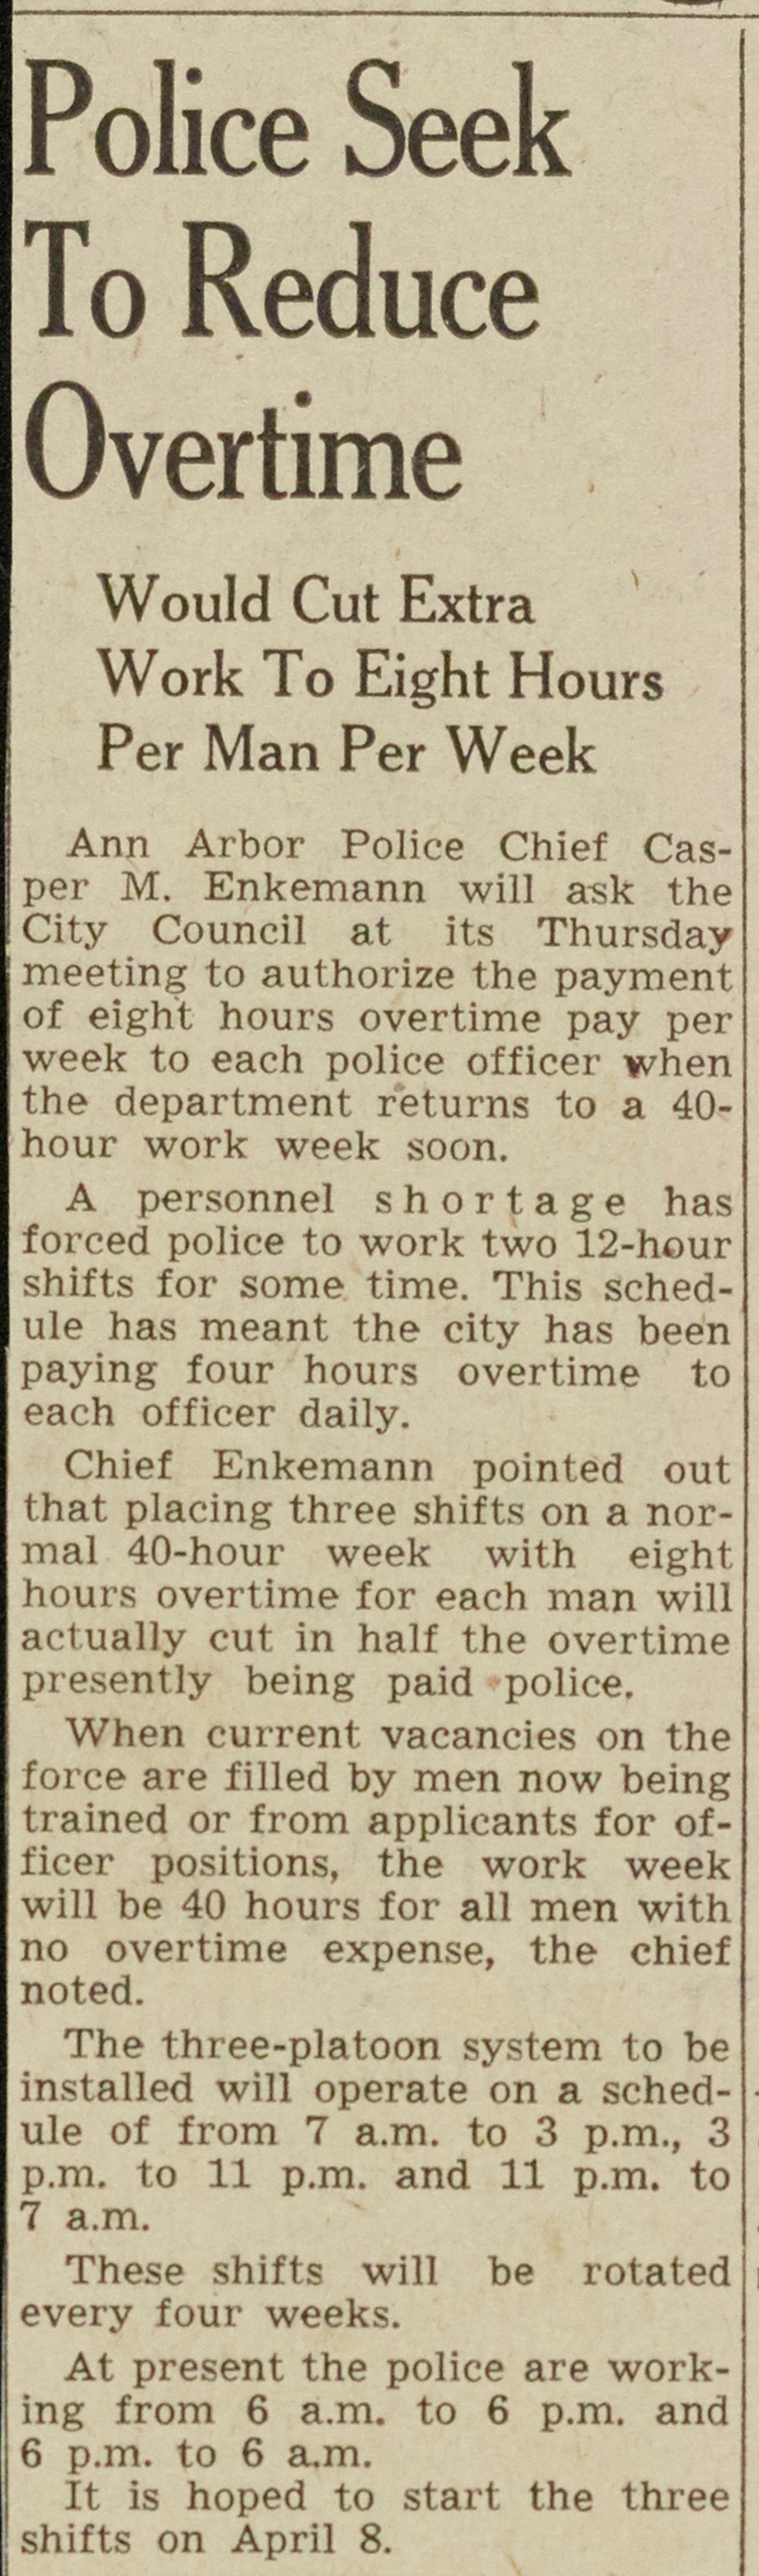 Police Seek To Reduce Overtime image